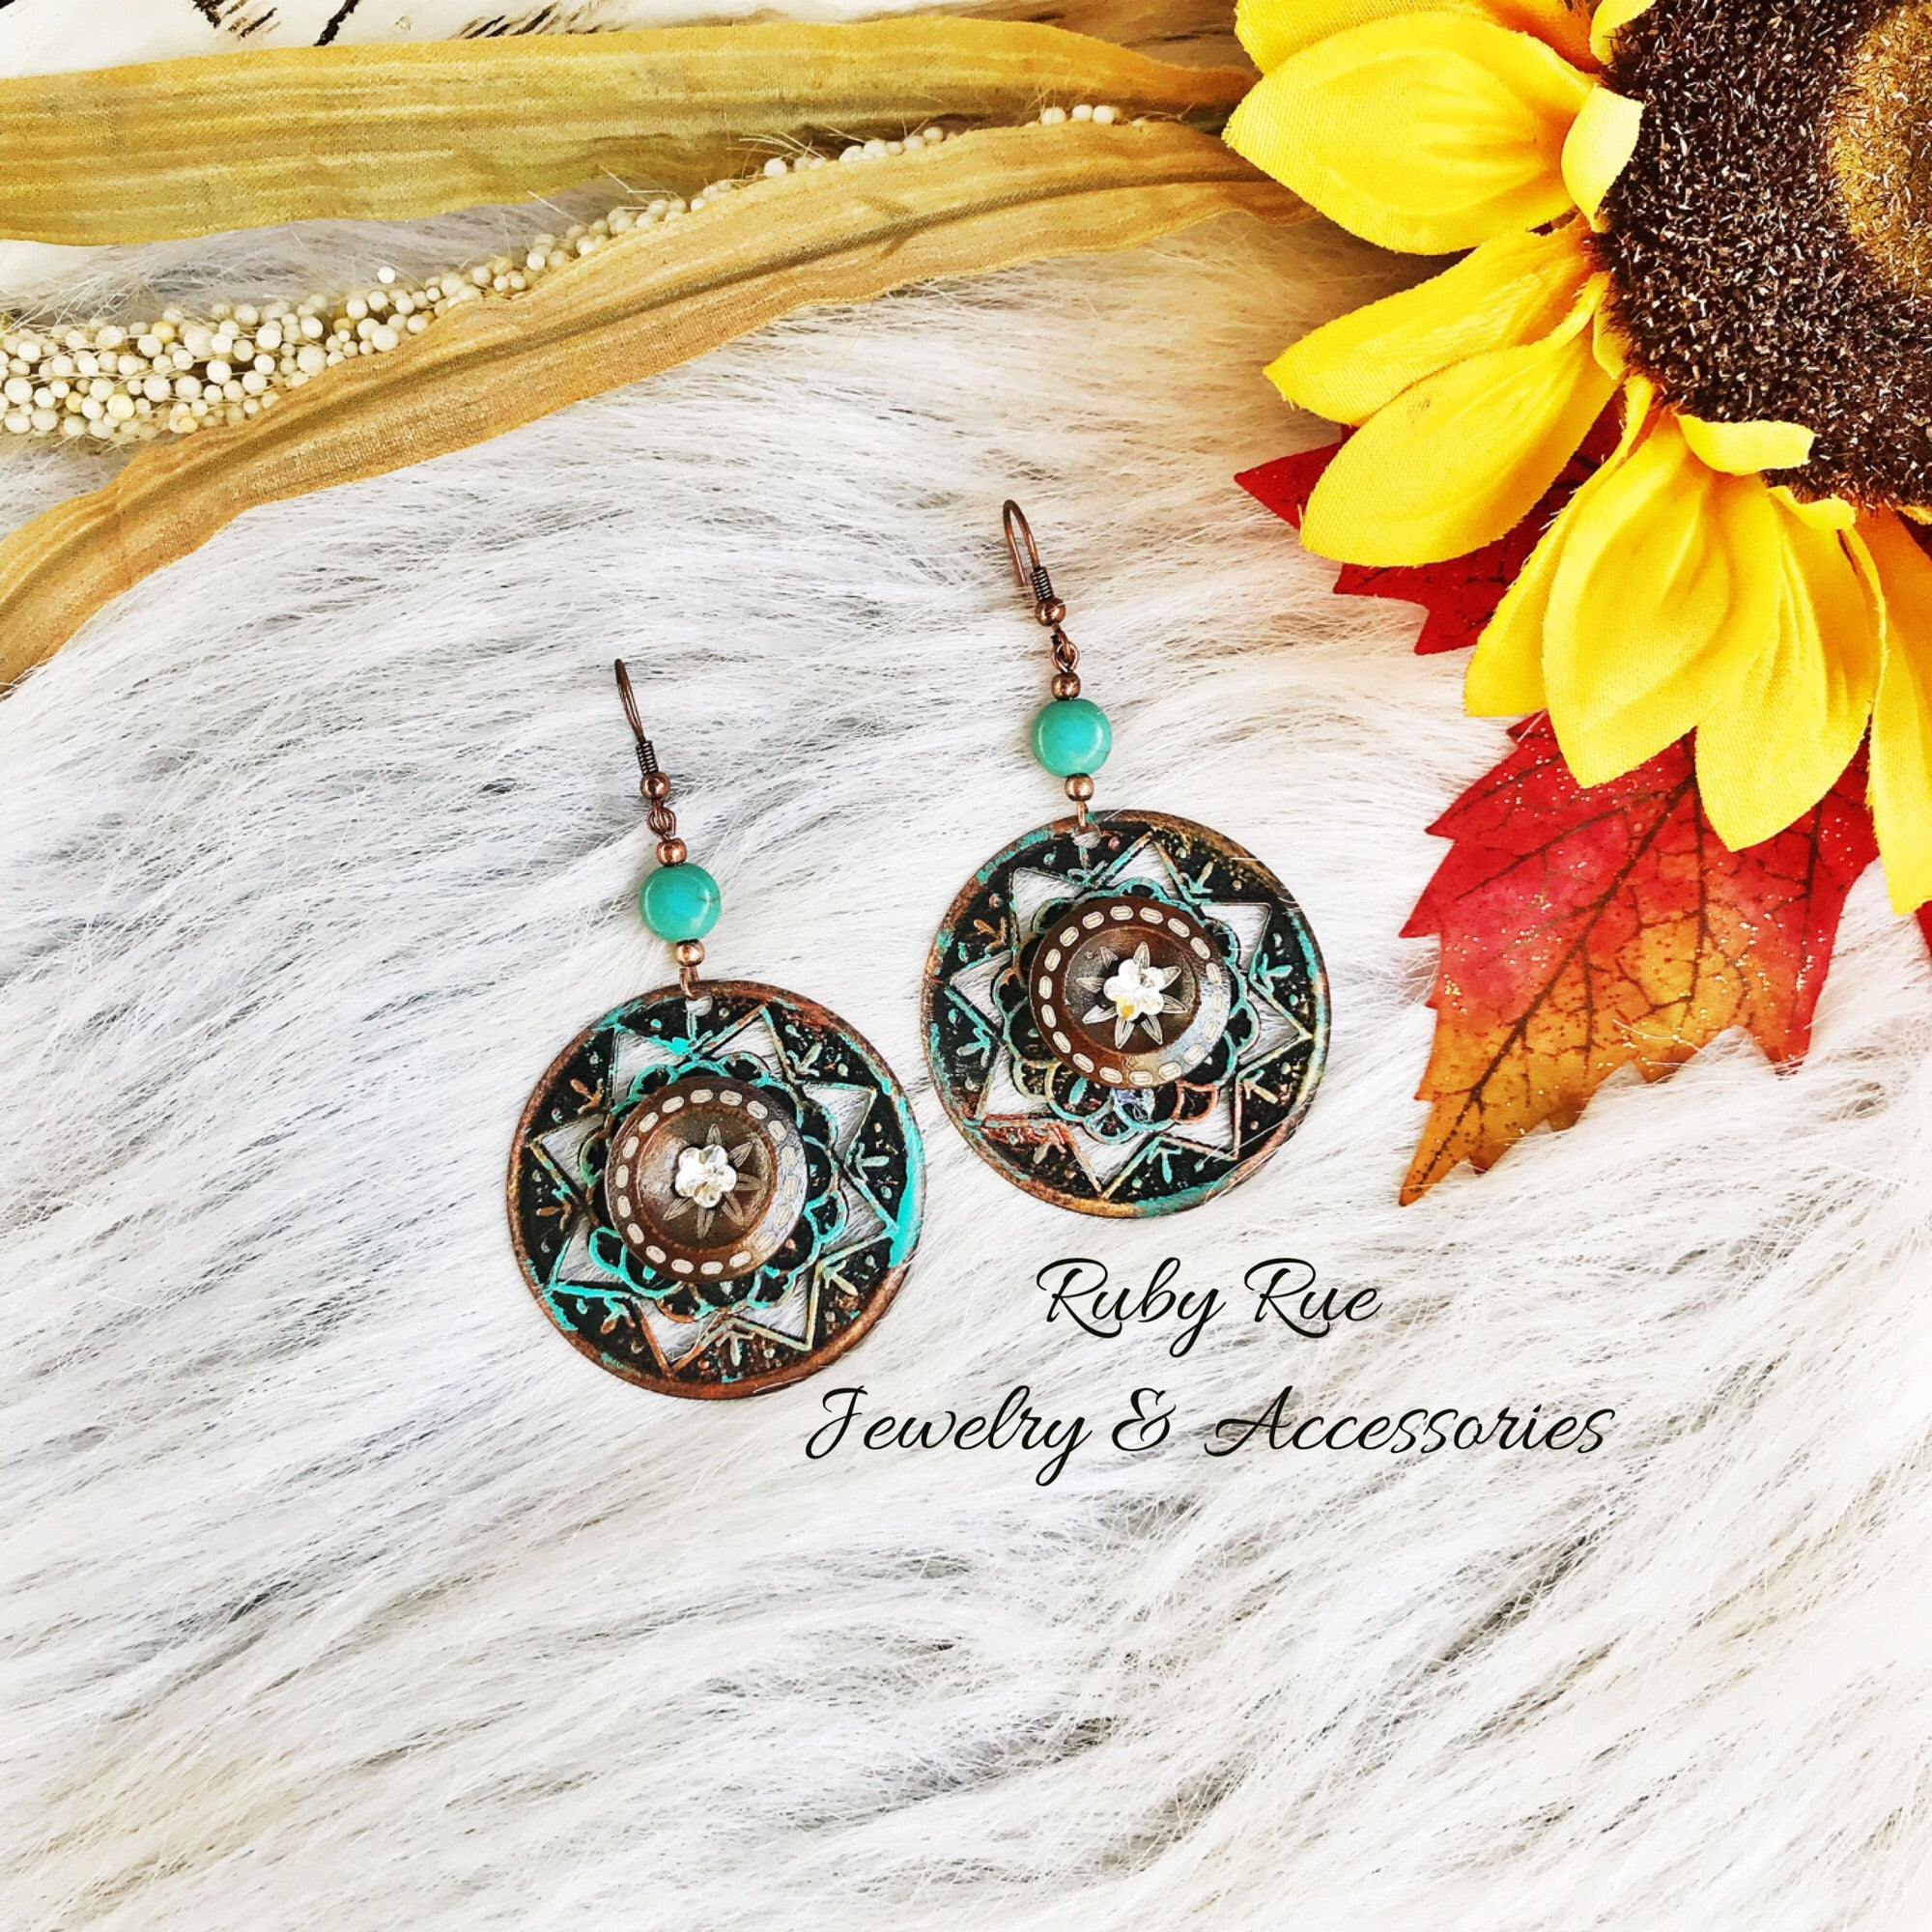 Western Bling Earrings - Ruby Rue Jewelry & Accessories